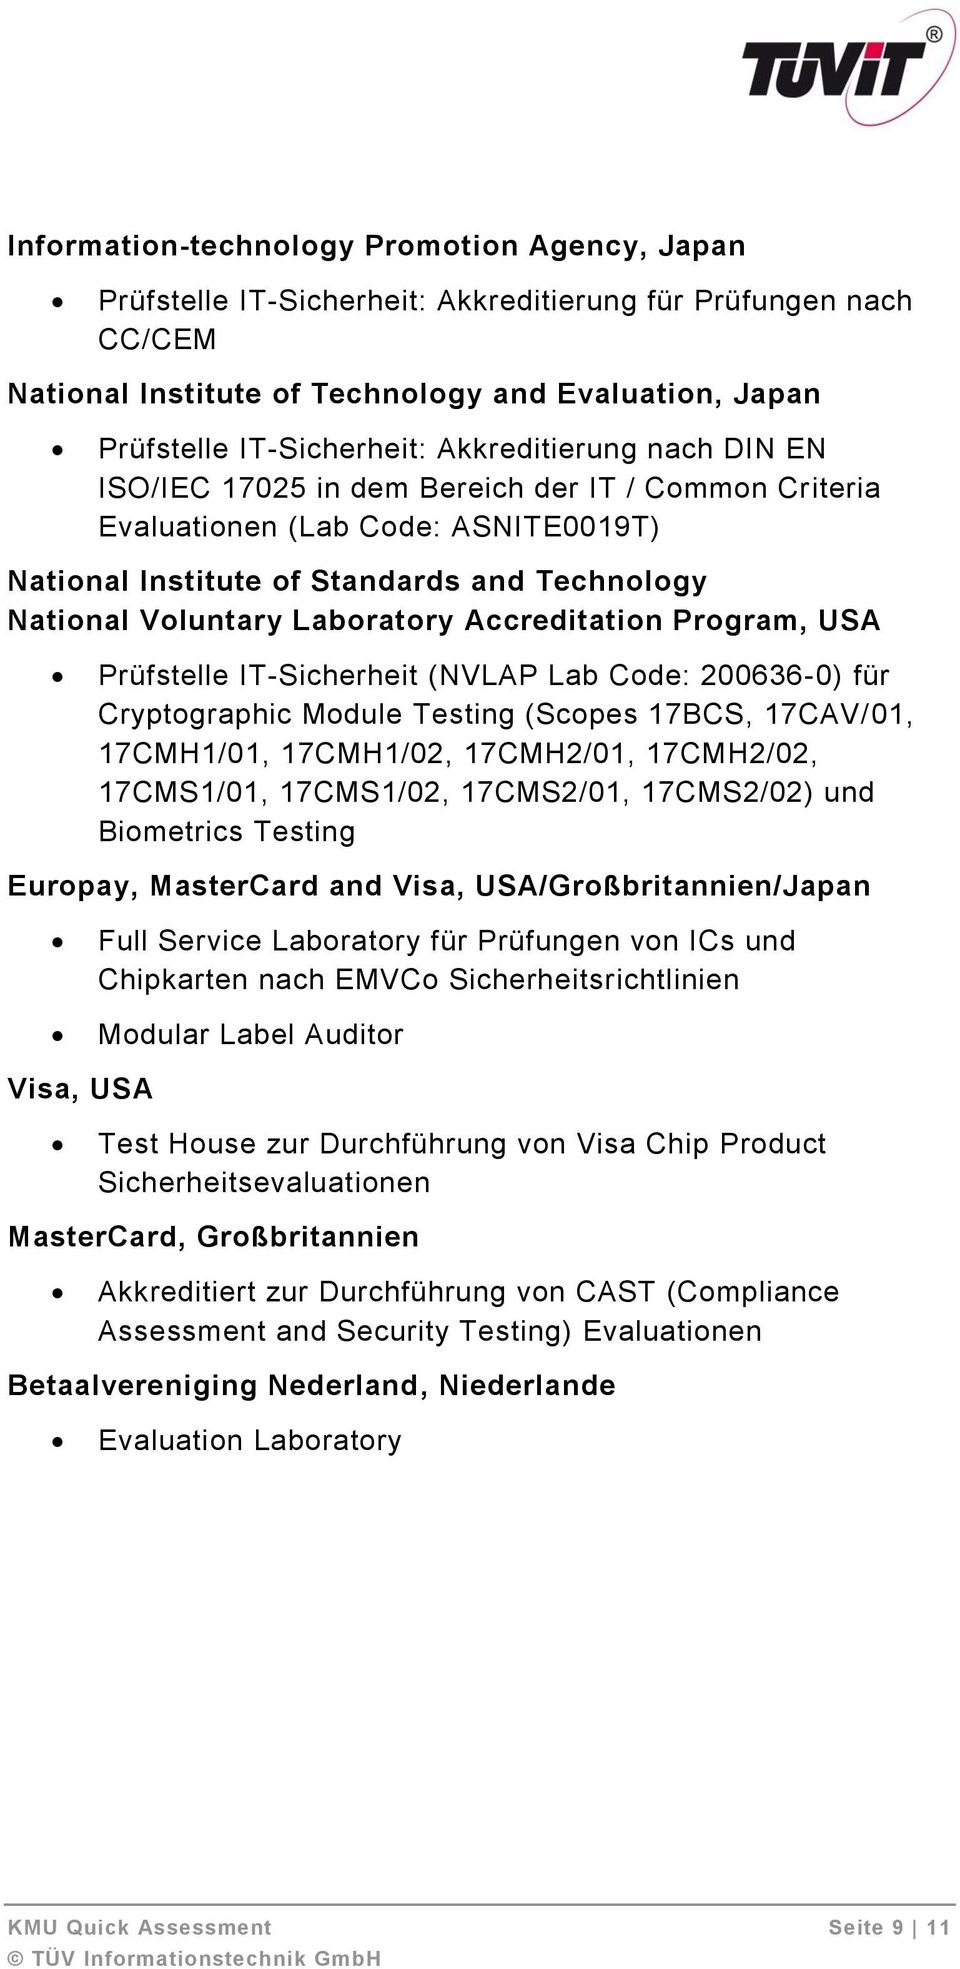 Accreditation Program, USA Prüfstelle IT-Sicherheit (NVLAP Lab Code: 200636-0) für Cryptographic Module Testing (Scopes 17BCS, 17CAV/01, 17CMH1/01, 17CMH1/02, 17CMH2/01, 17CMH2/02, 17CMS1/01,